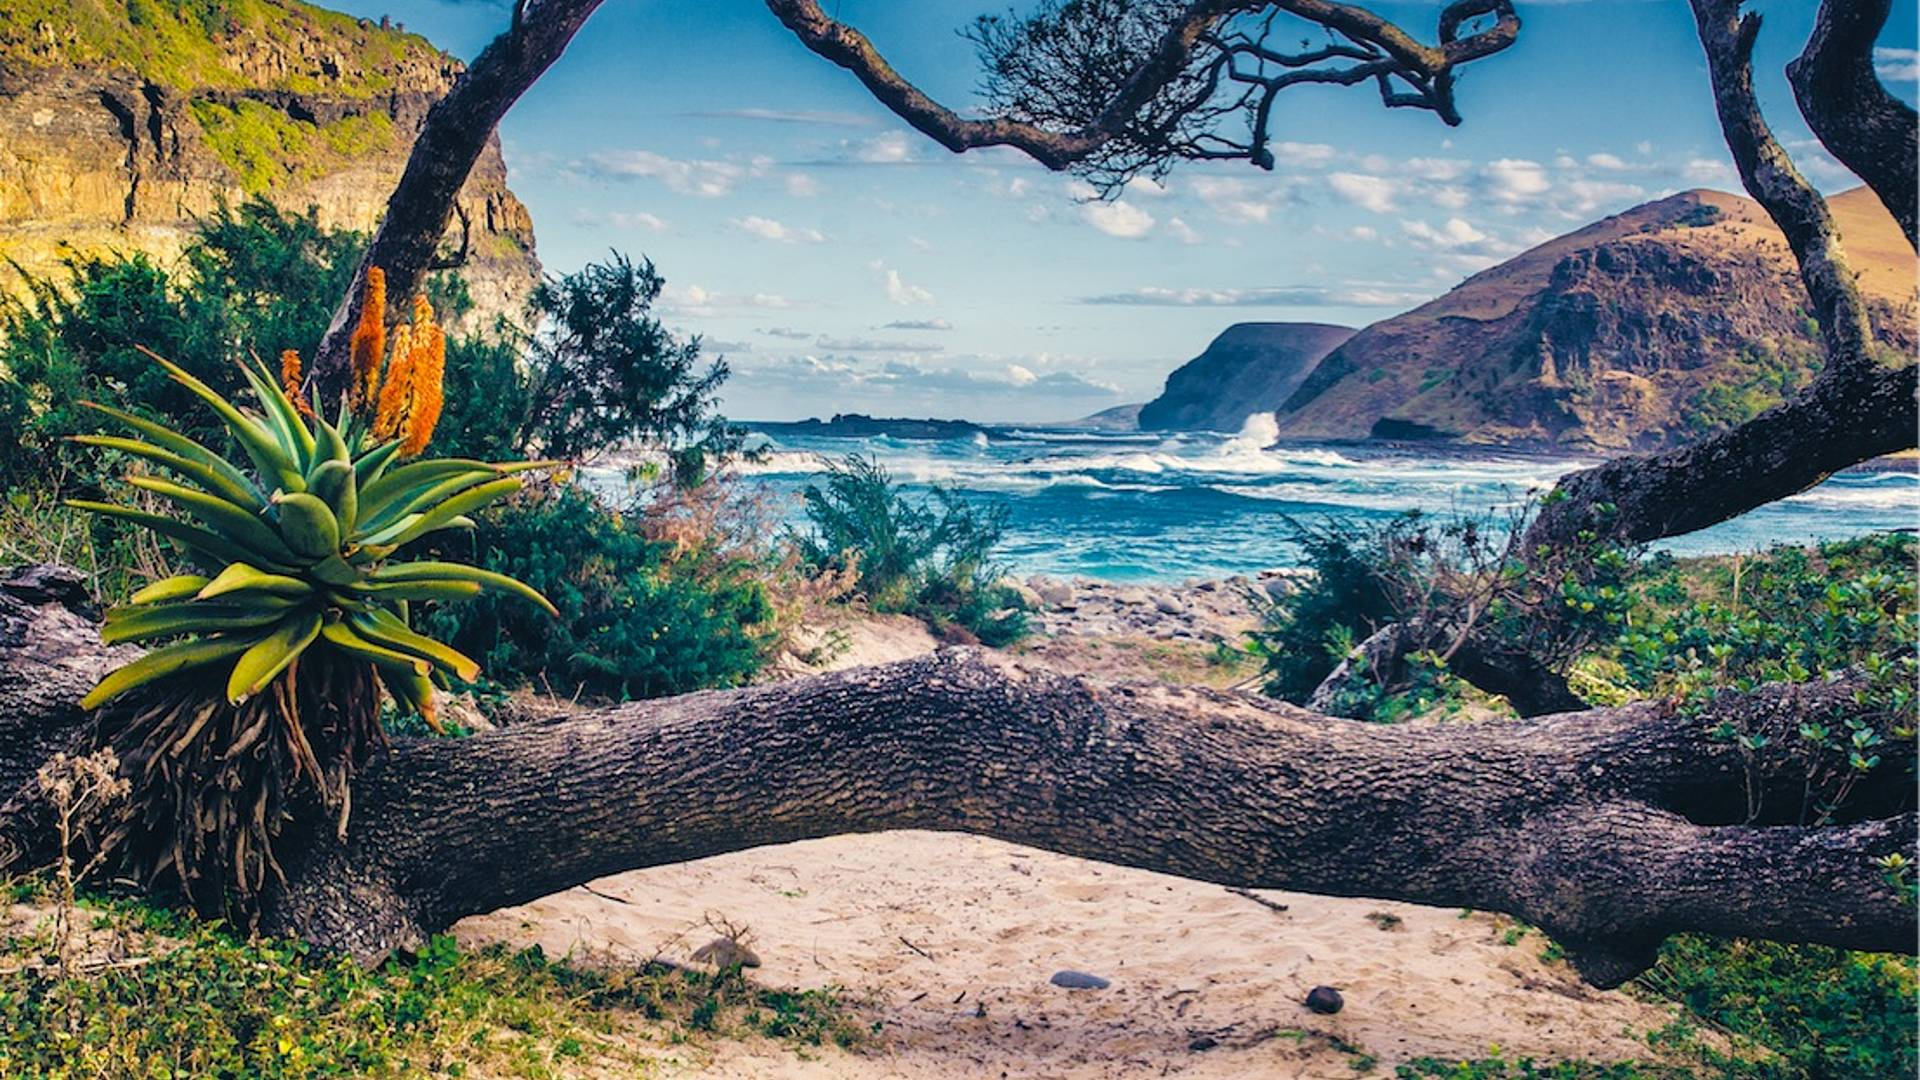 Garden Route off the beaten track - Natur pur